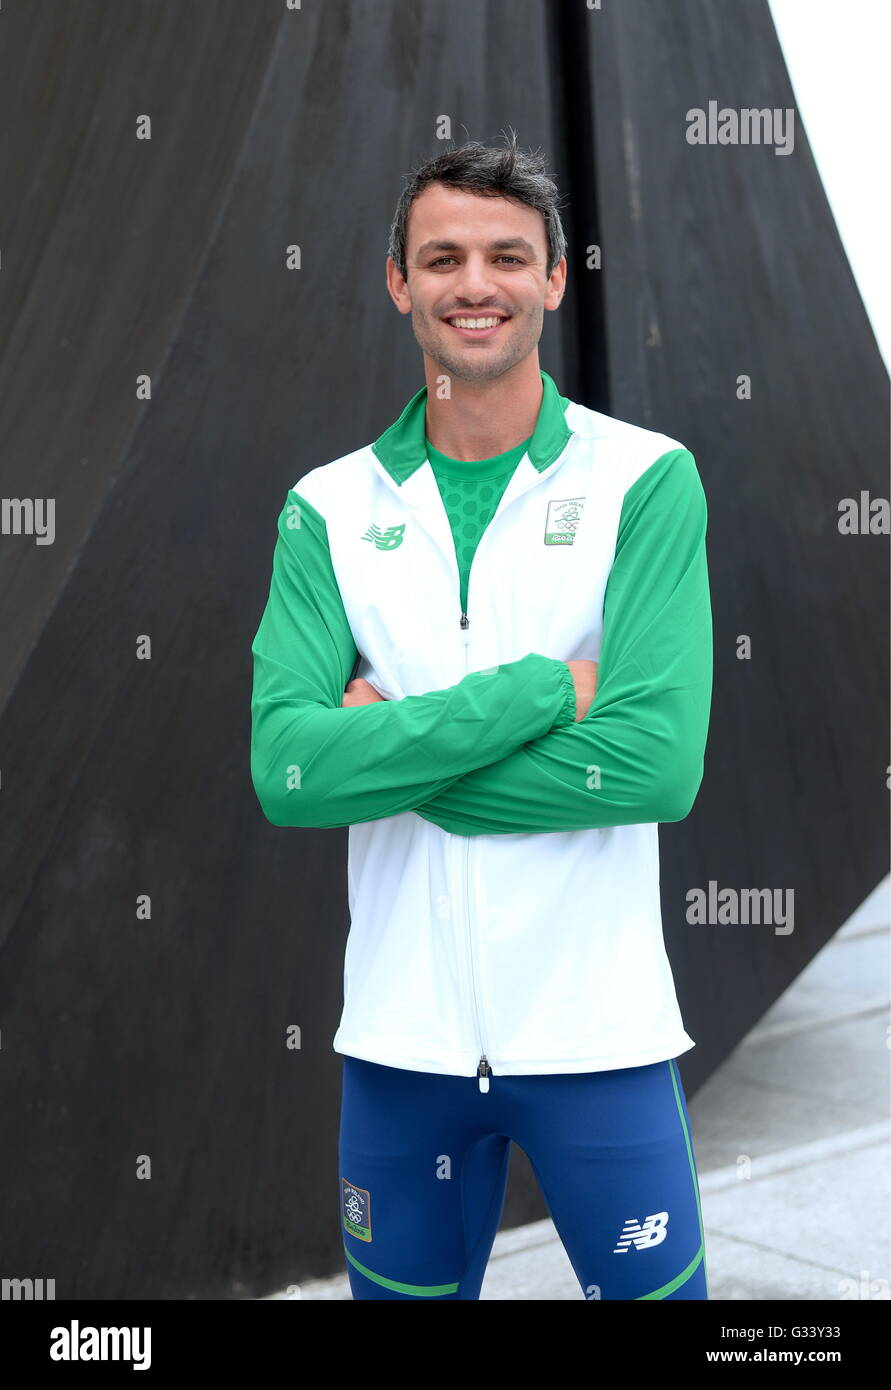 Athlete Thomas Barr during a the Team Ireland offical 2016 kit launch. Wood Quay, Dublin. - Stock Image